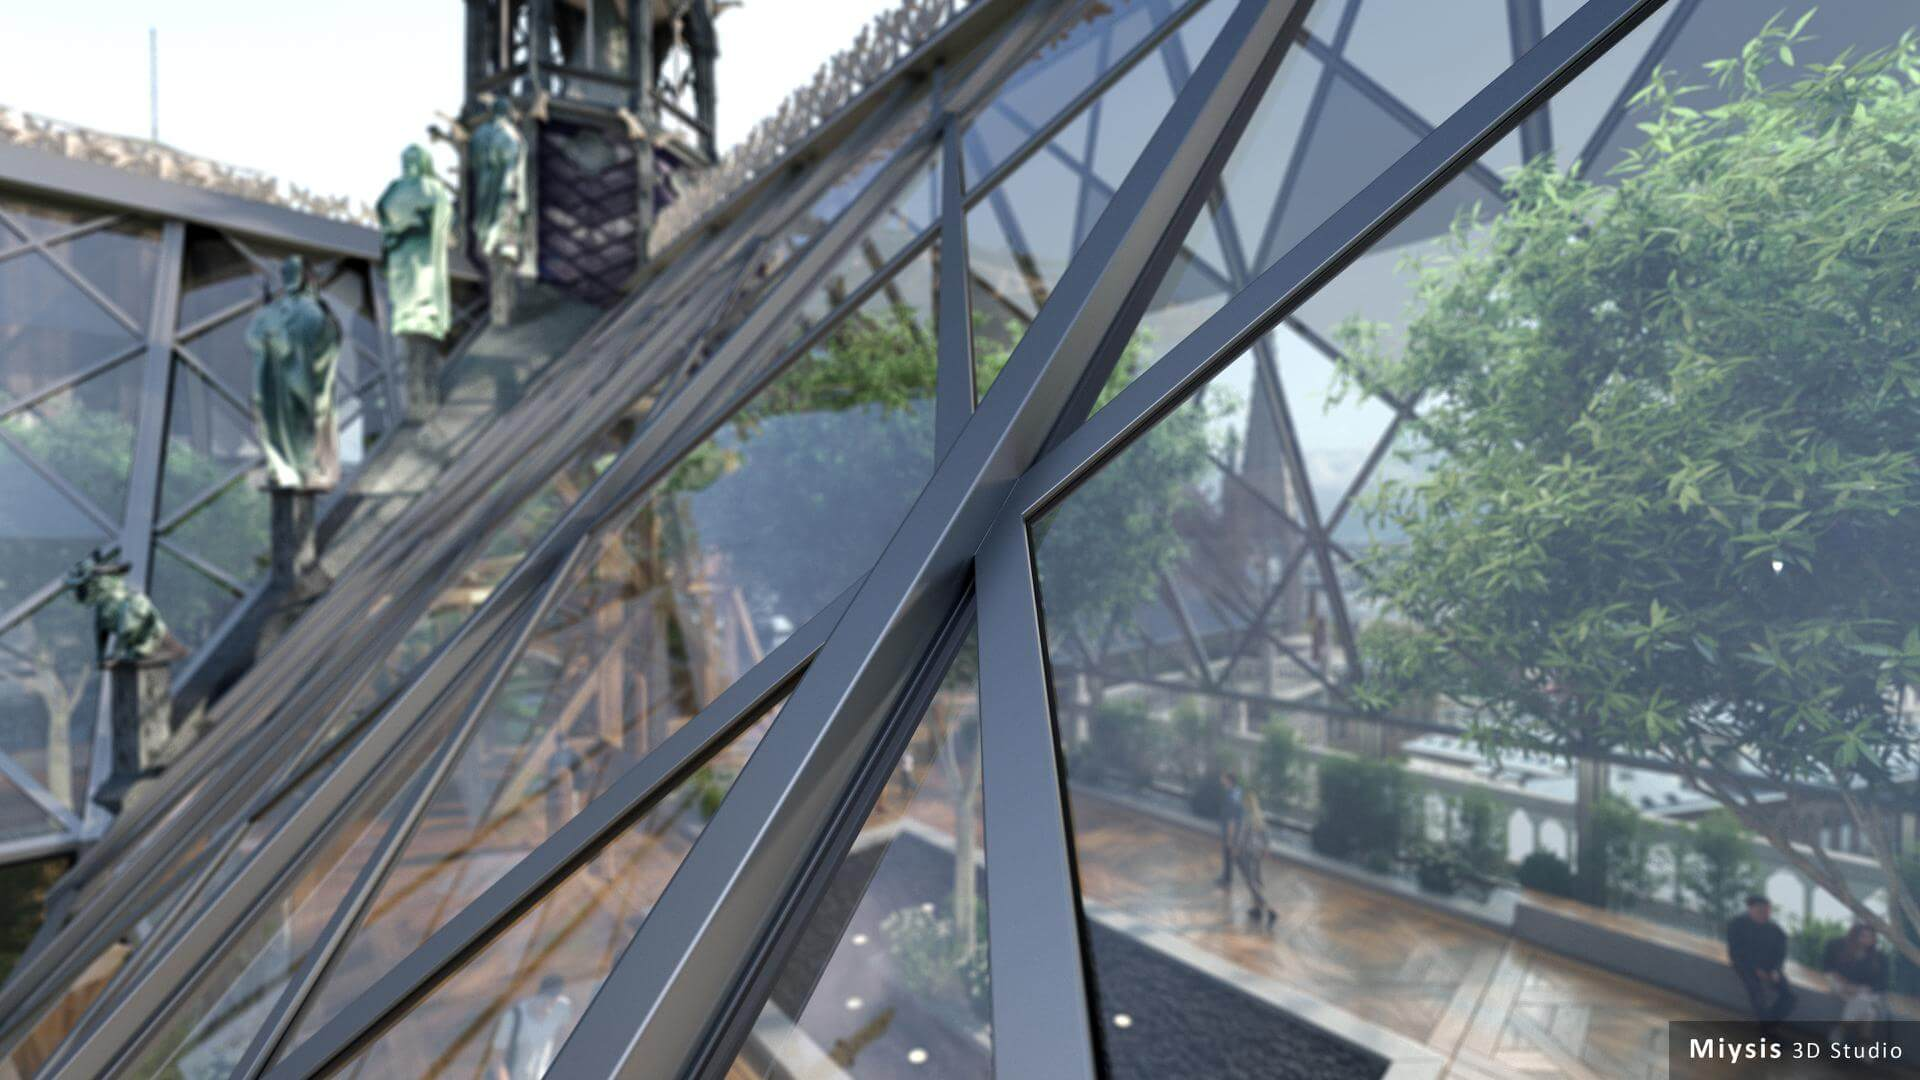 """Notre Dame de Paris glass roof"" render by Miysis 3D."